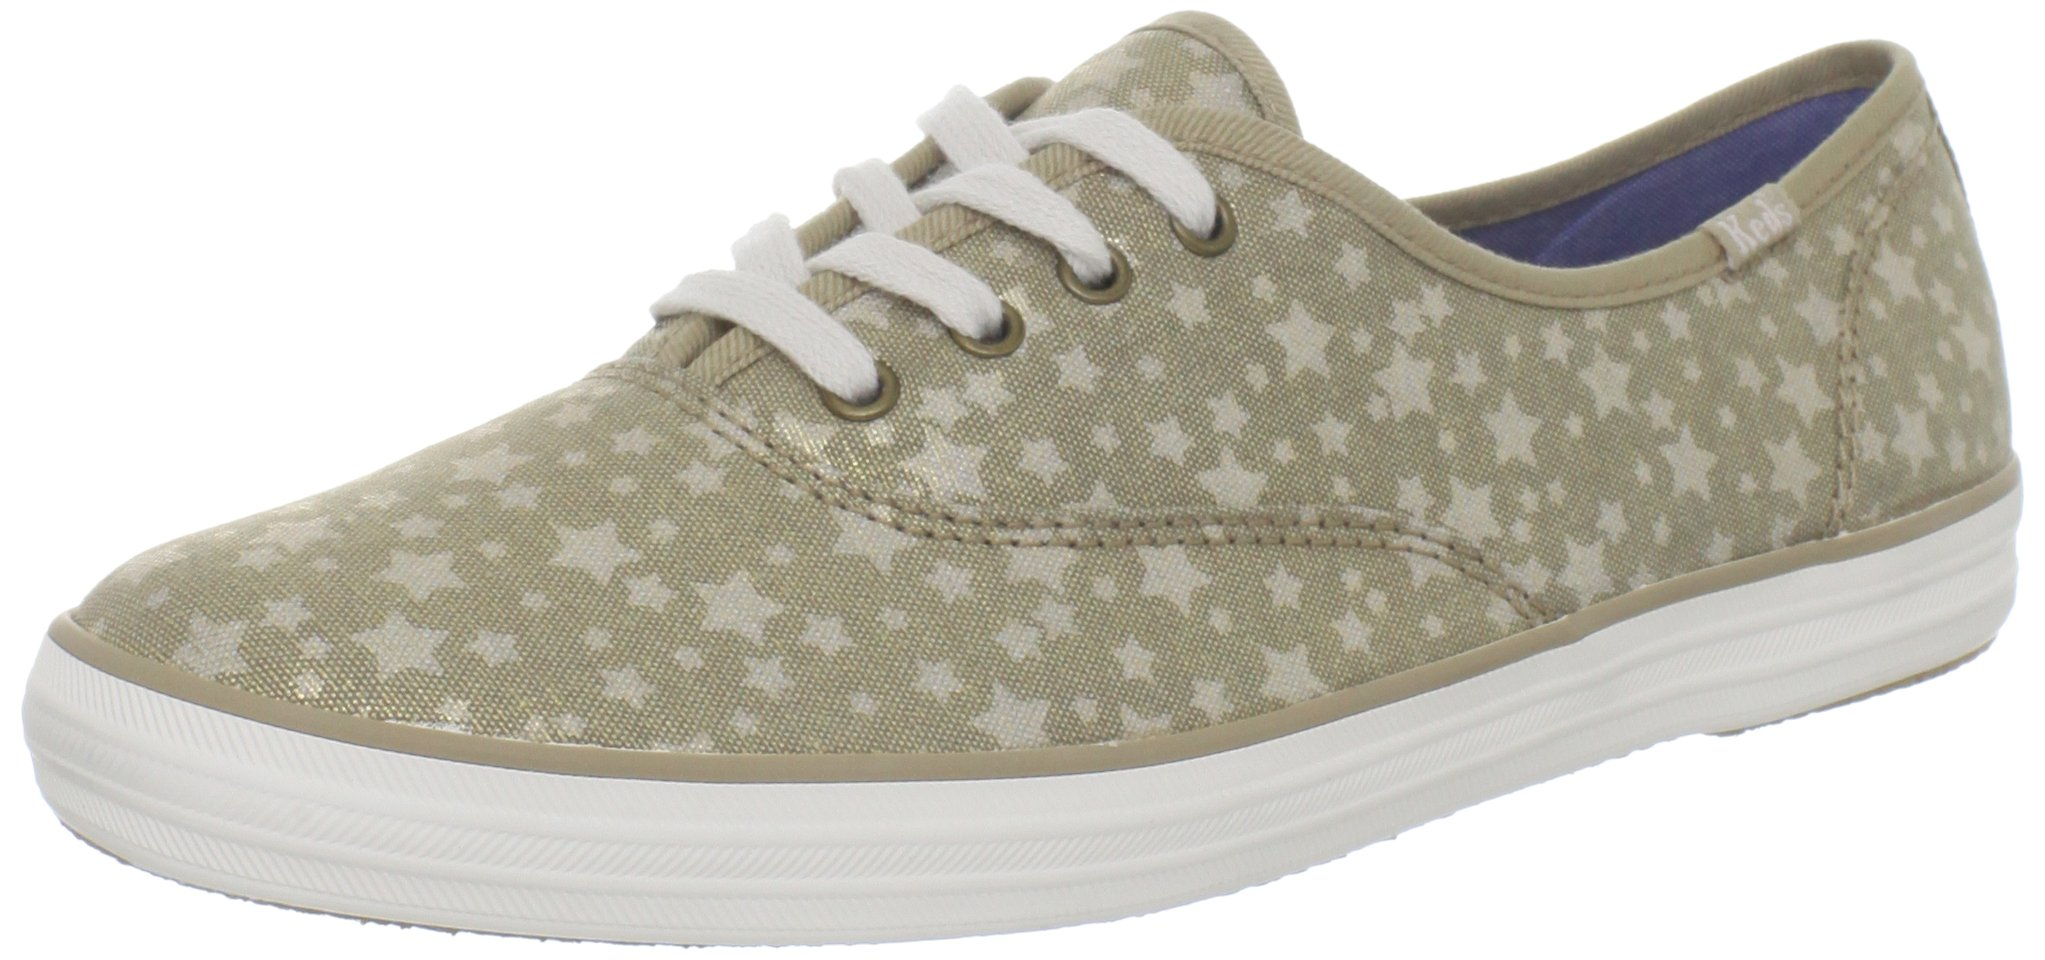 Keds Women's Champion Stars Lace Up Shoes,Cream Chambray,7 M US